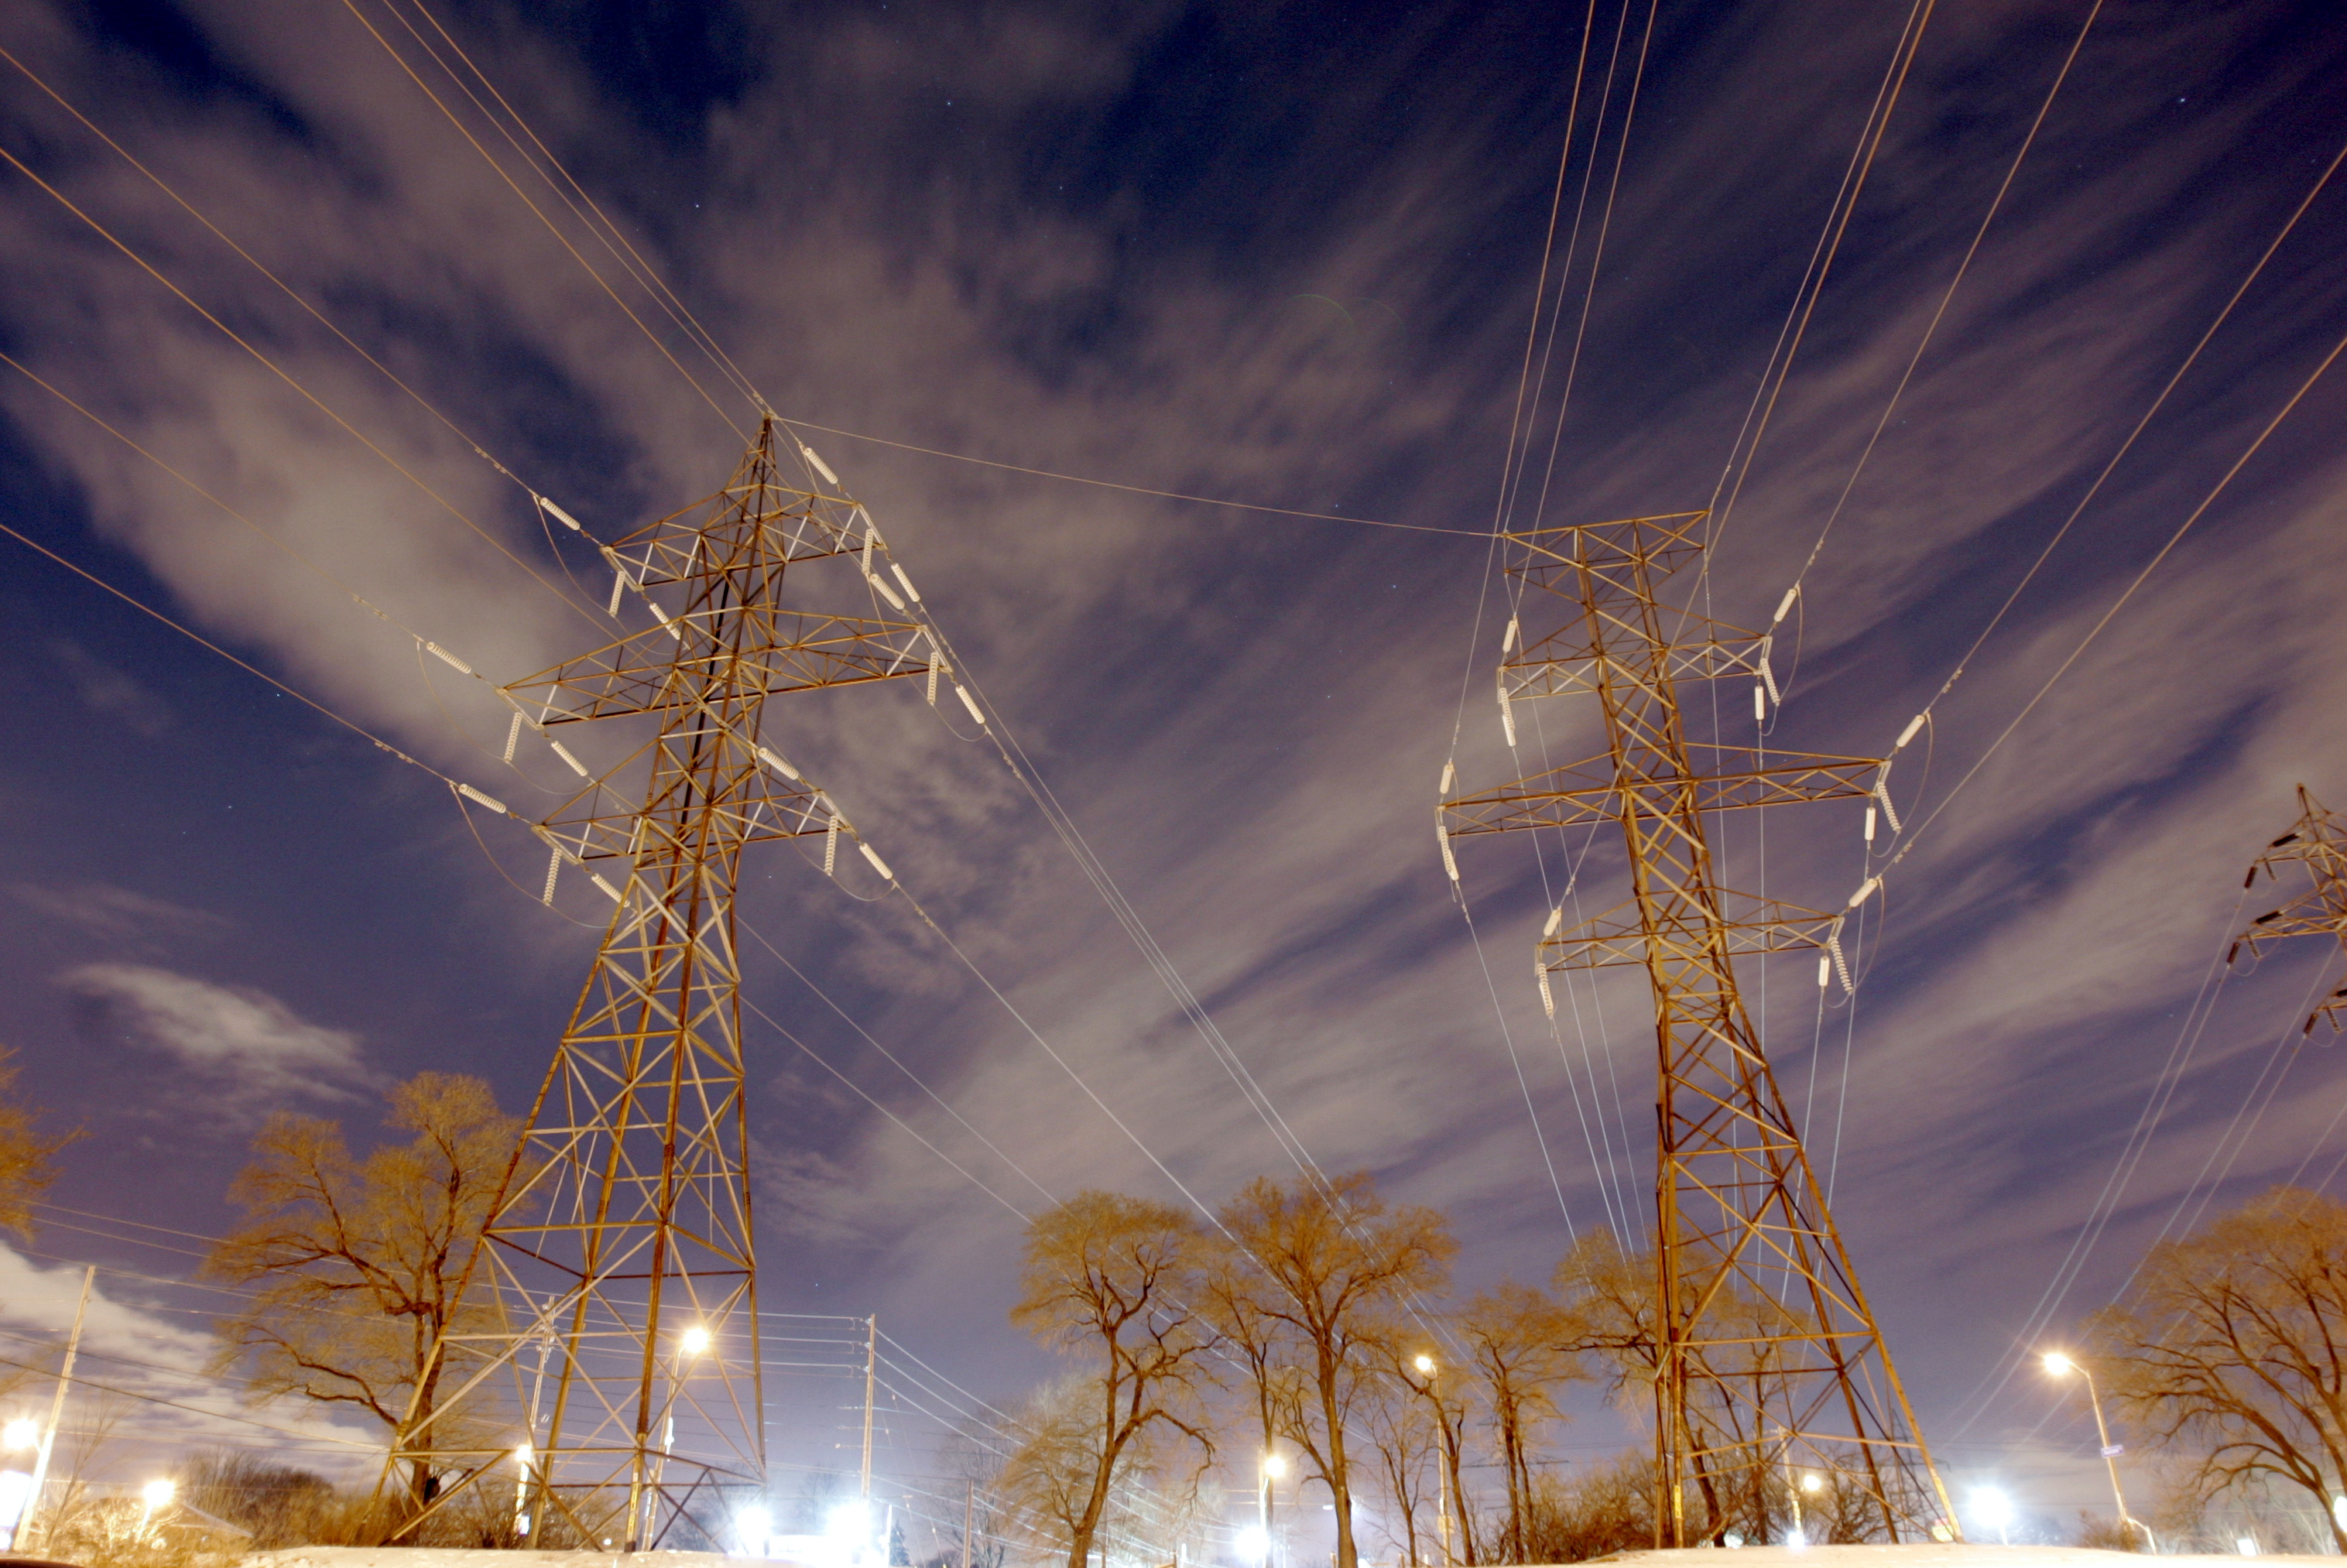 High-voltage electrical power transmission lines at night in Toronto, February 9, 2007. REUTERS/J.P. Moczulski/File Photo